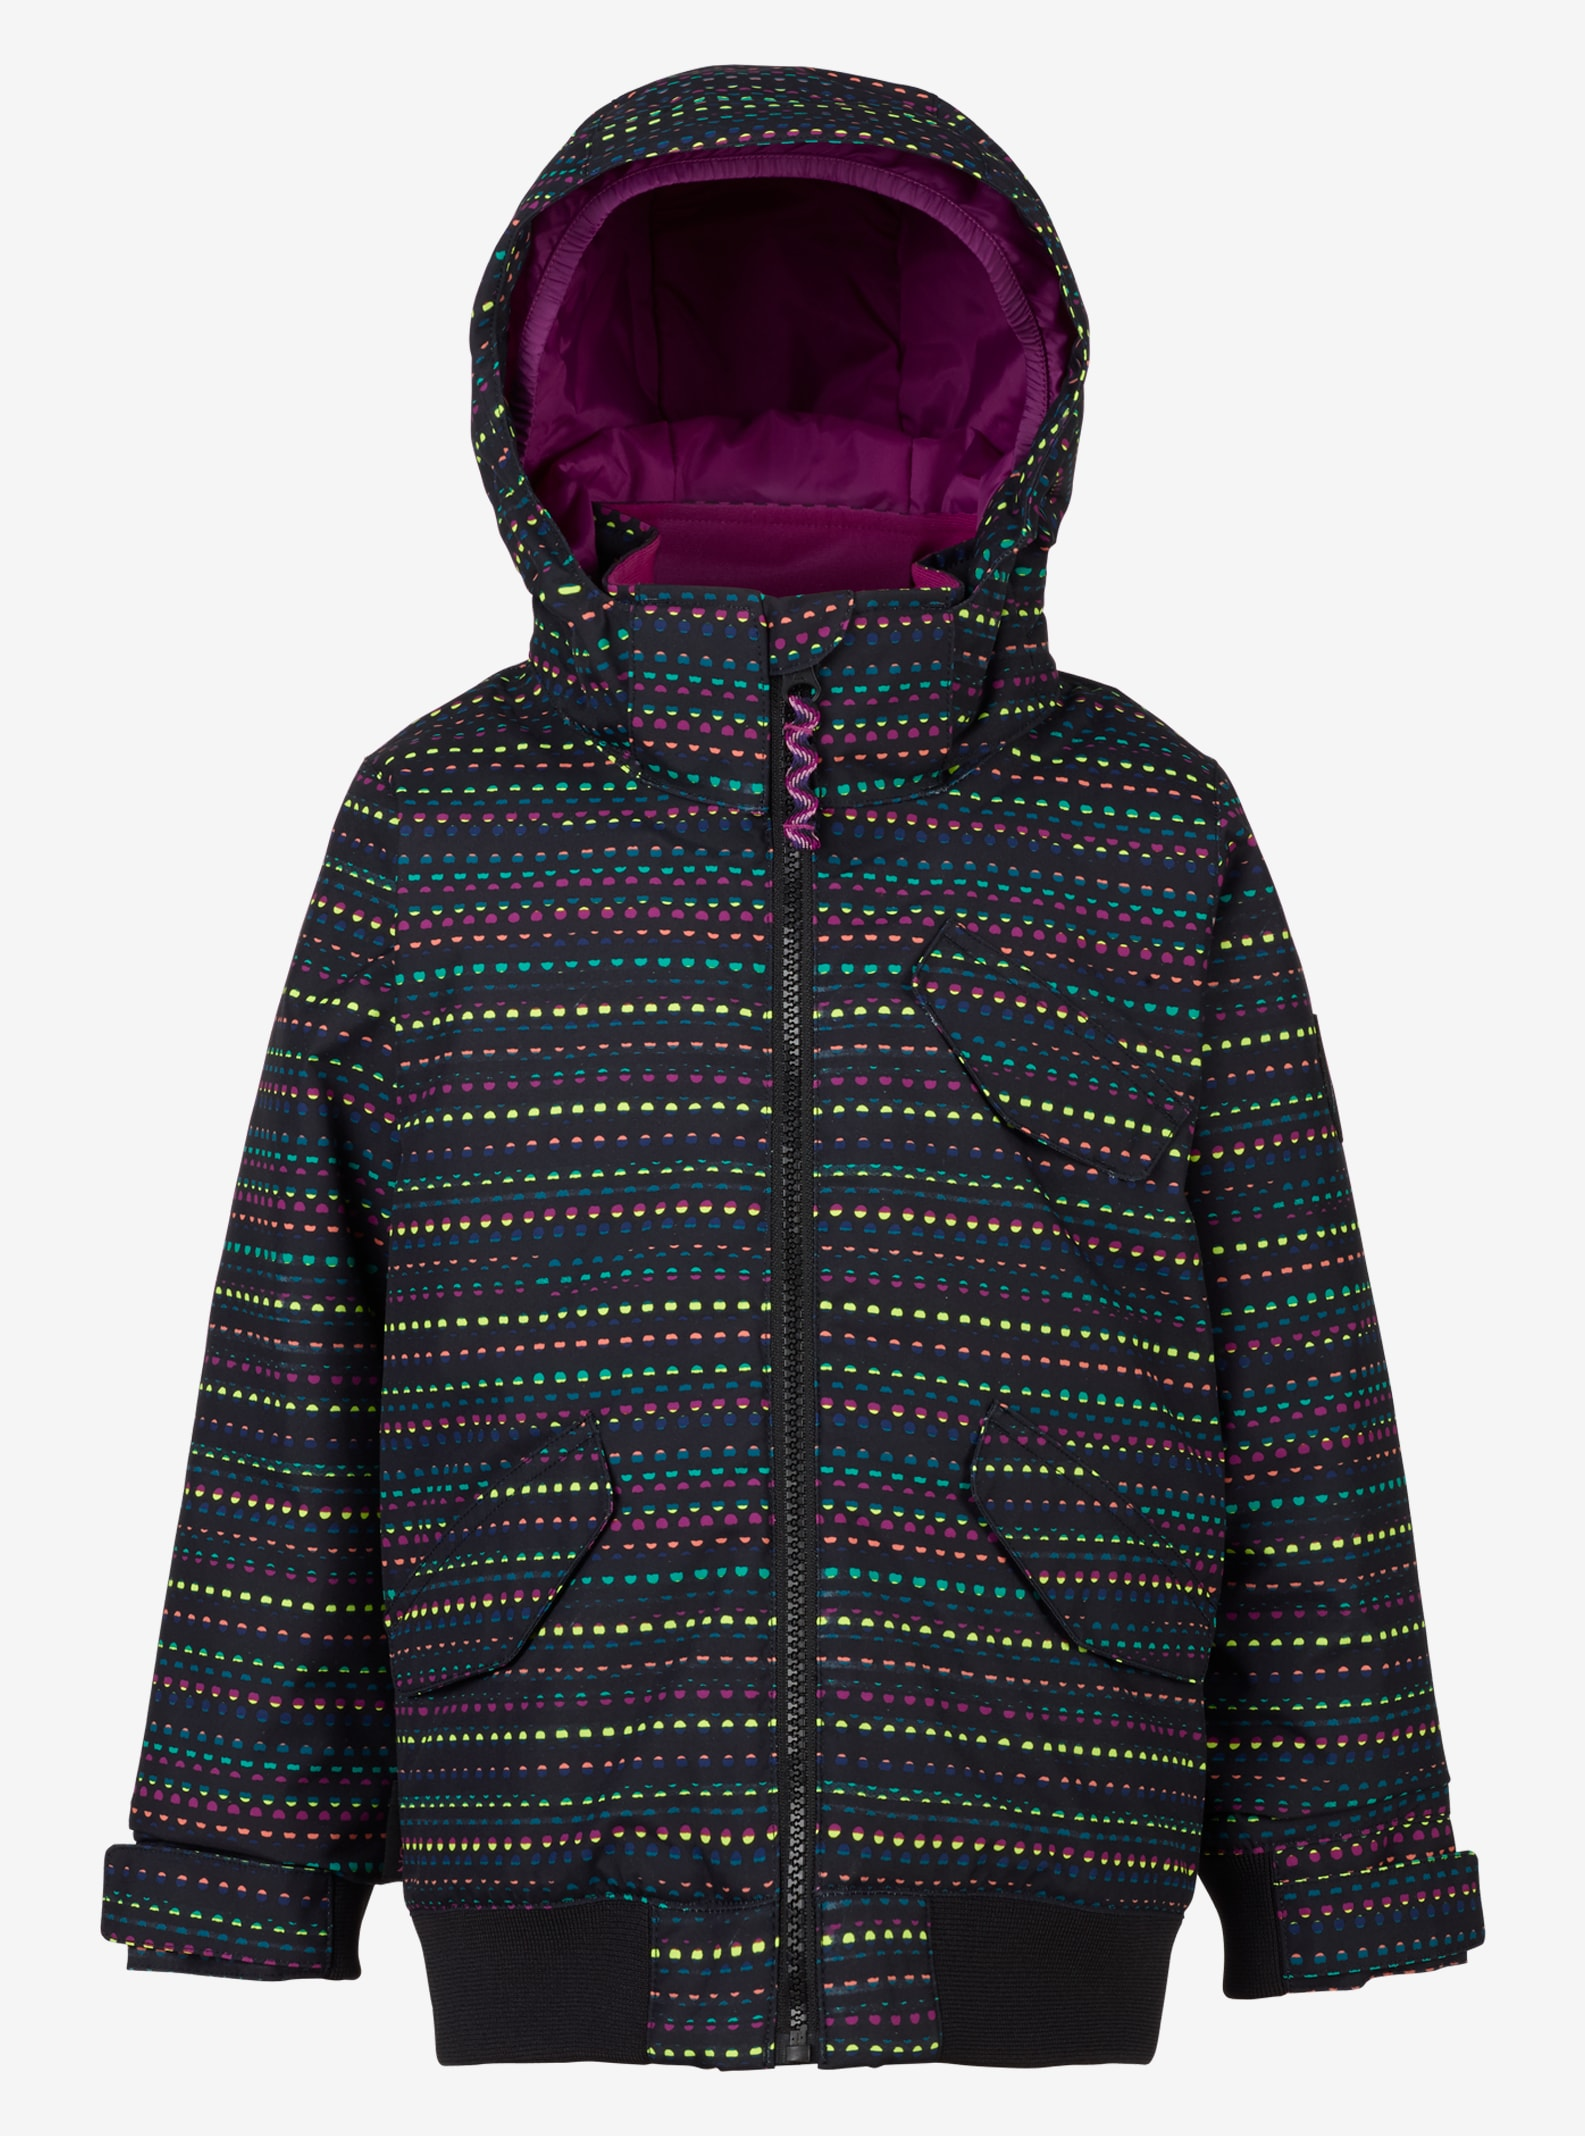 Girls' Burton Minishred Twist Bomber Jacket shown in Candy Dots